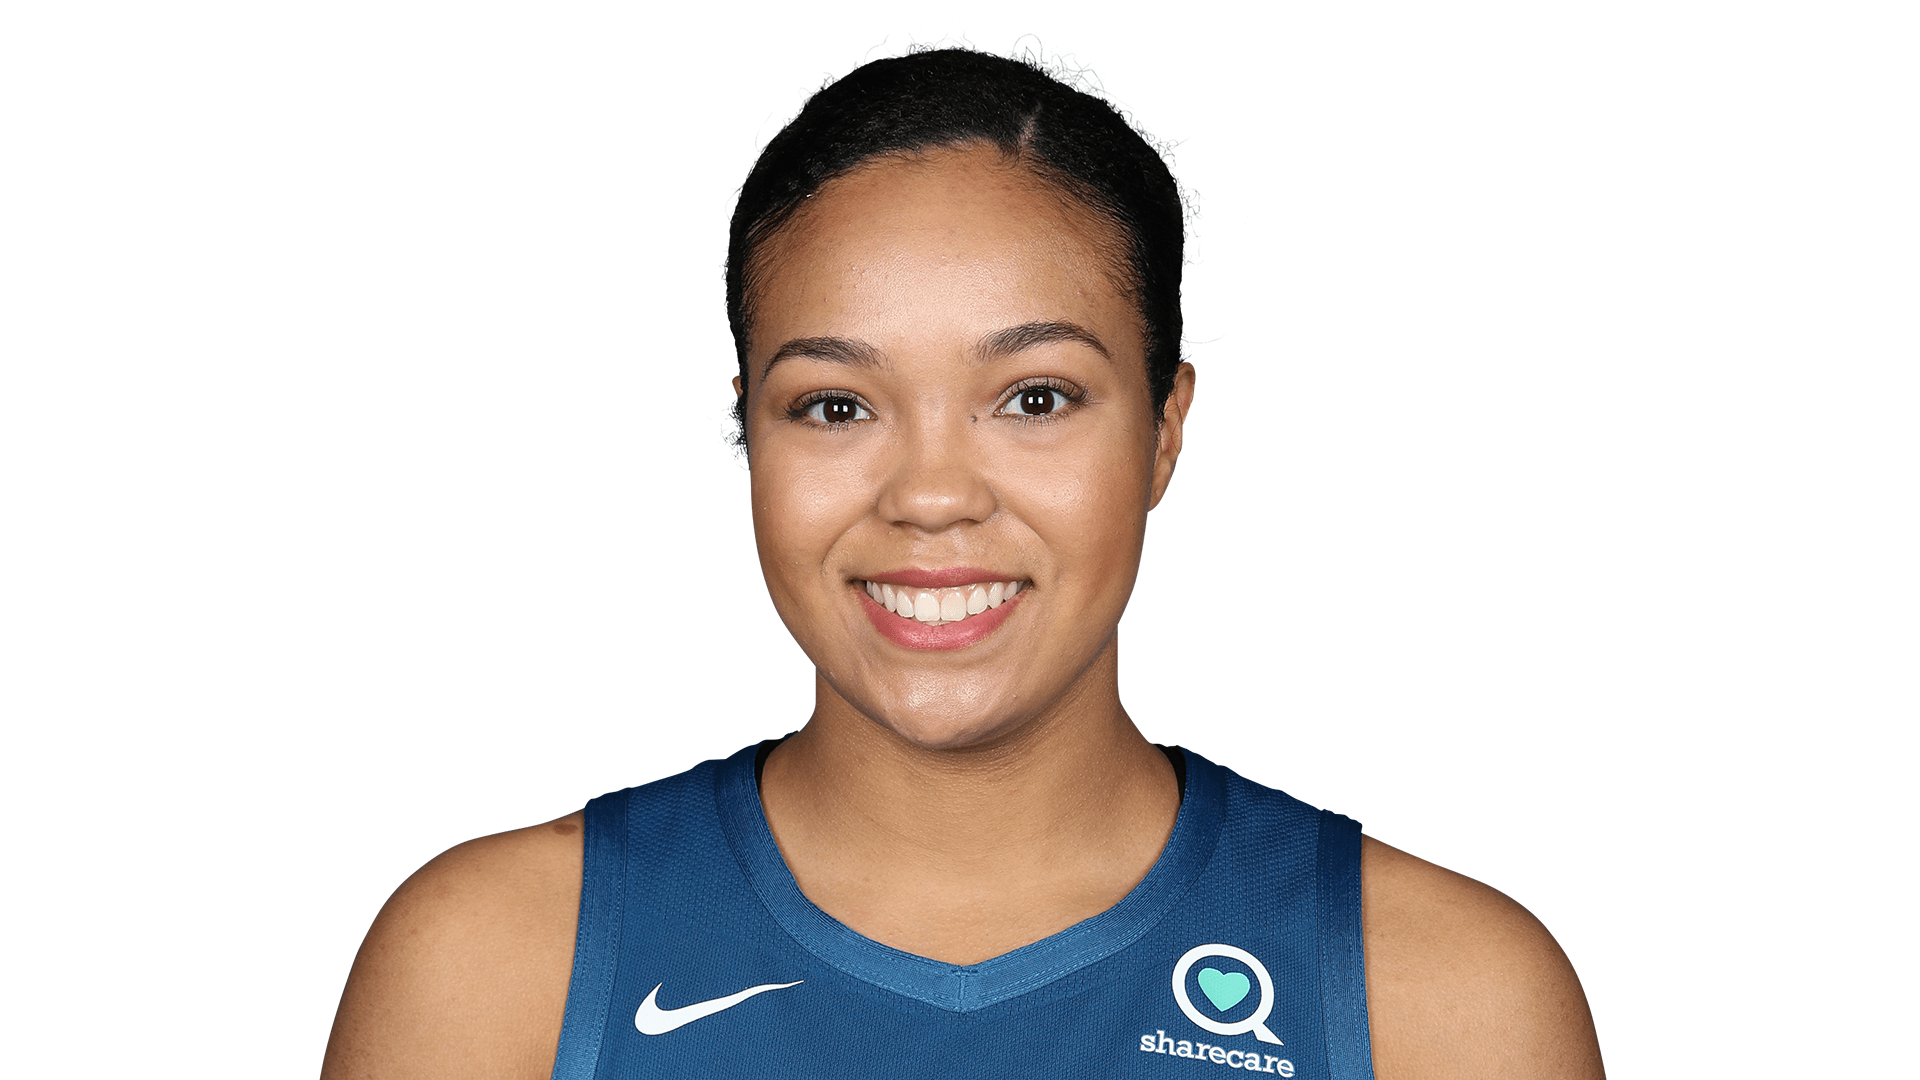 Minnesota Lynx forward Napheesa Collier named as replacement player for A'ja Wilson in 2019 WNBA All-Star Game